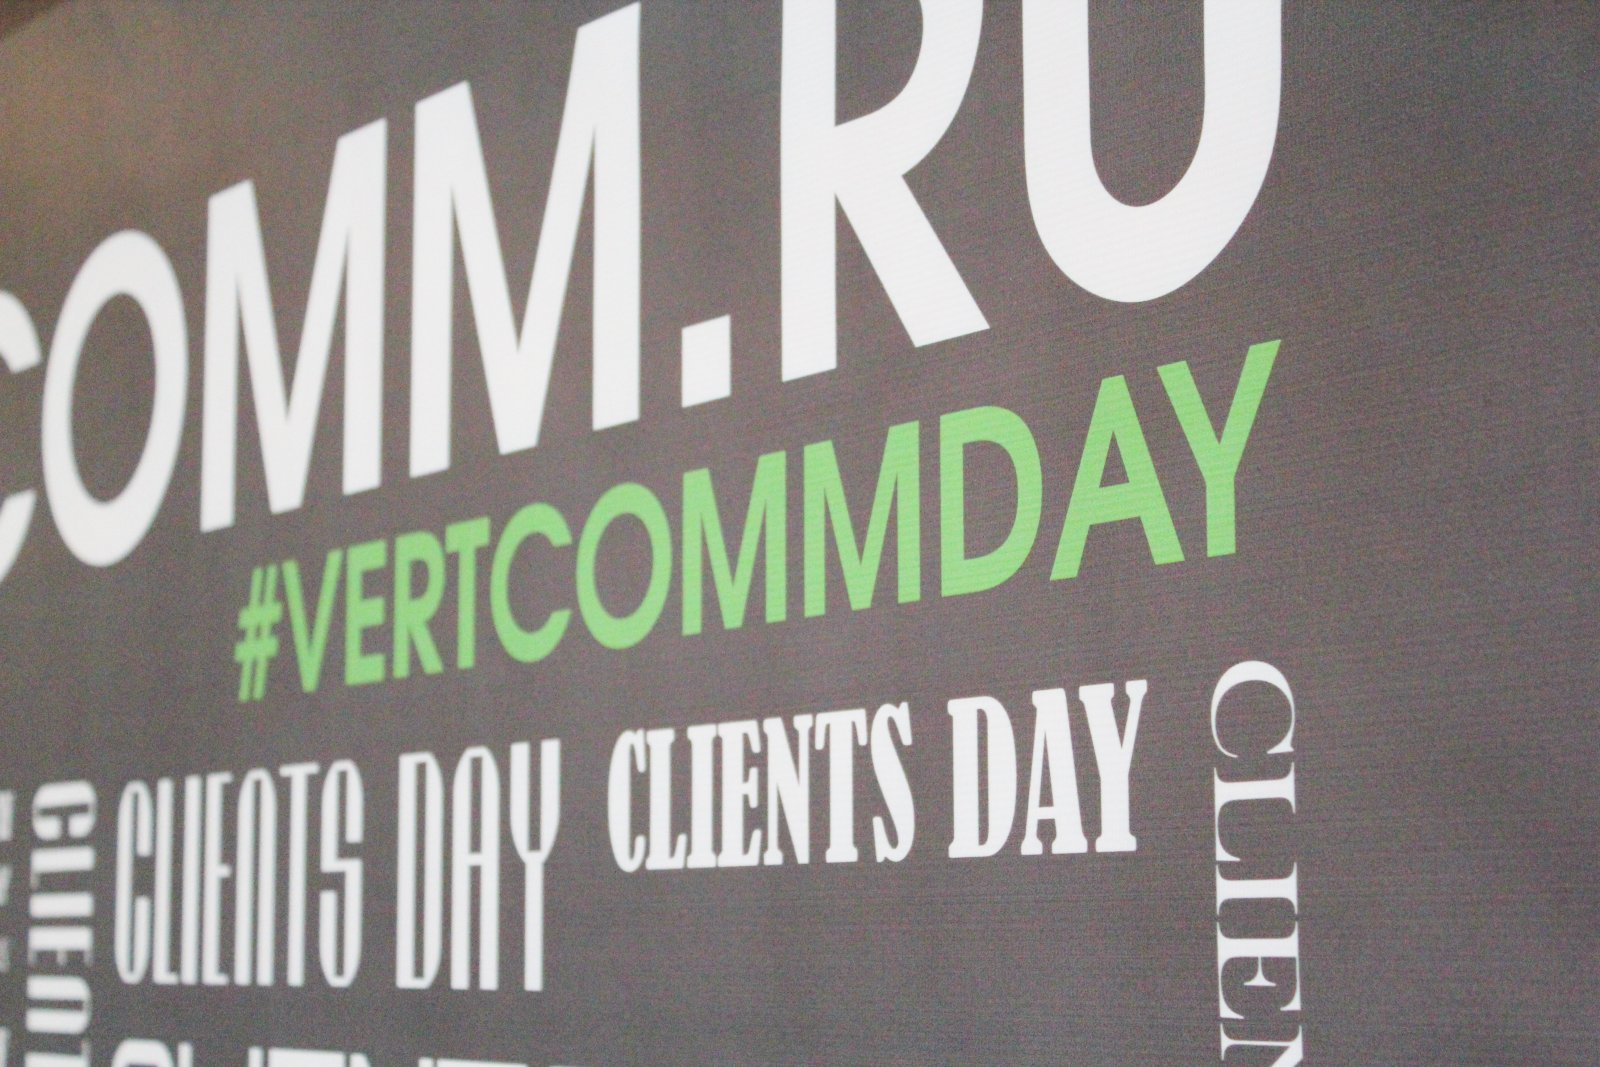 VERTCOMM CLIENTS DAY - ШОУРУМ НА ВЫЕЗДЕ. ФОТО- И ВИДЕООТЧЕТ